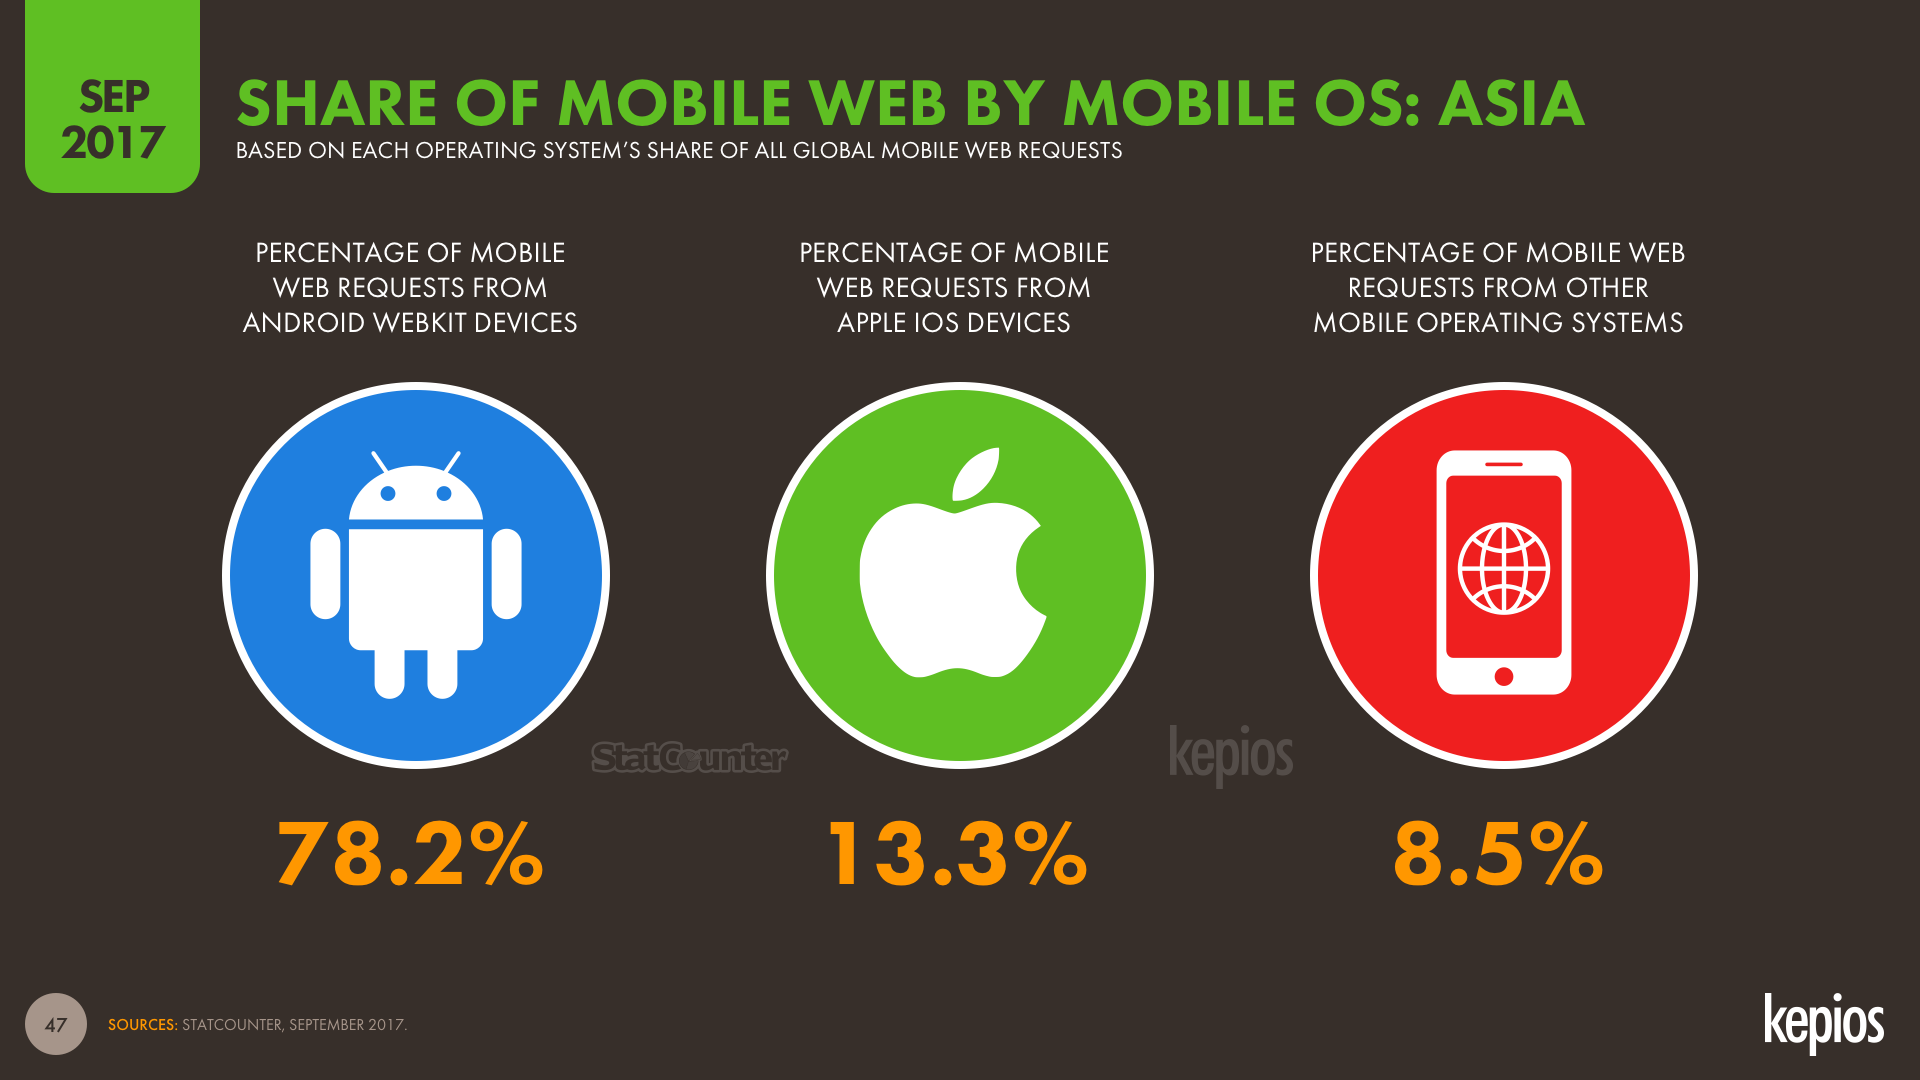 Share of Web Traffic by Mobile OS: Asia, Sep 2017